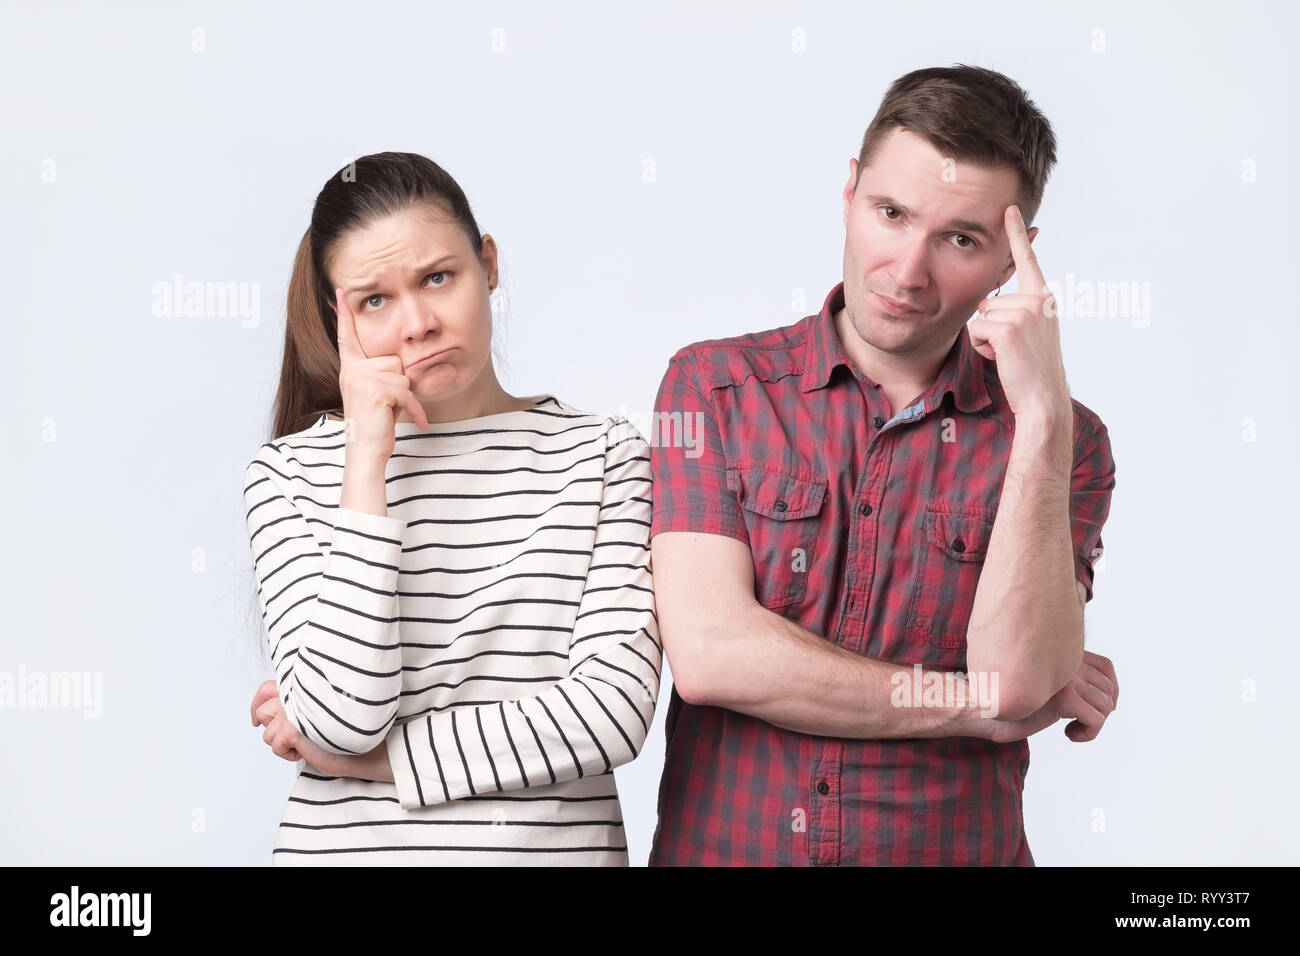 Attractive young couple standing side by side thinking puzzled - Stock Image